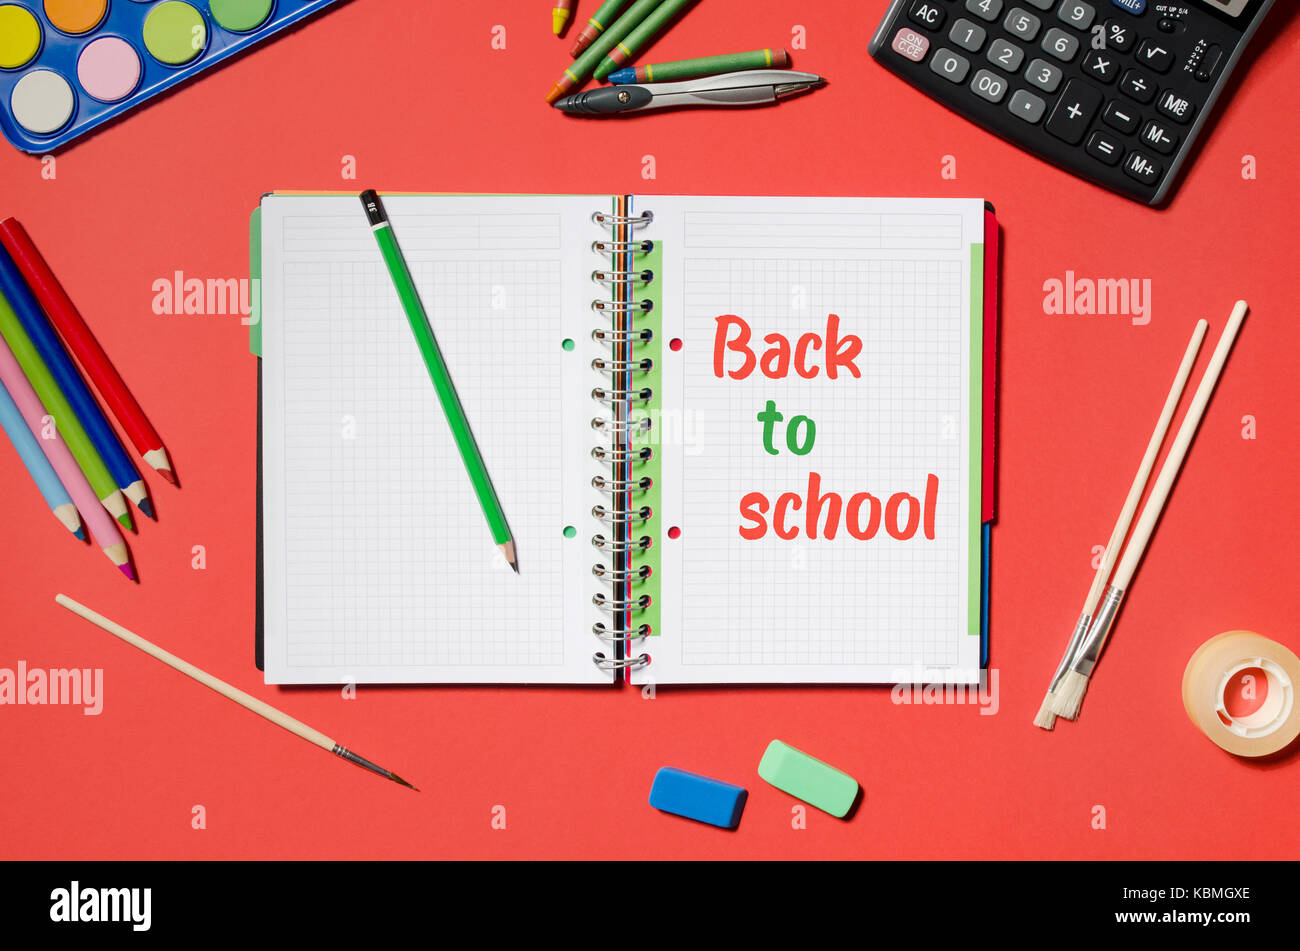 notepad with back to school words and office stationery red stock